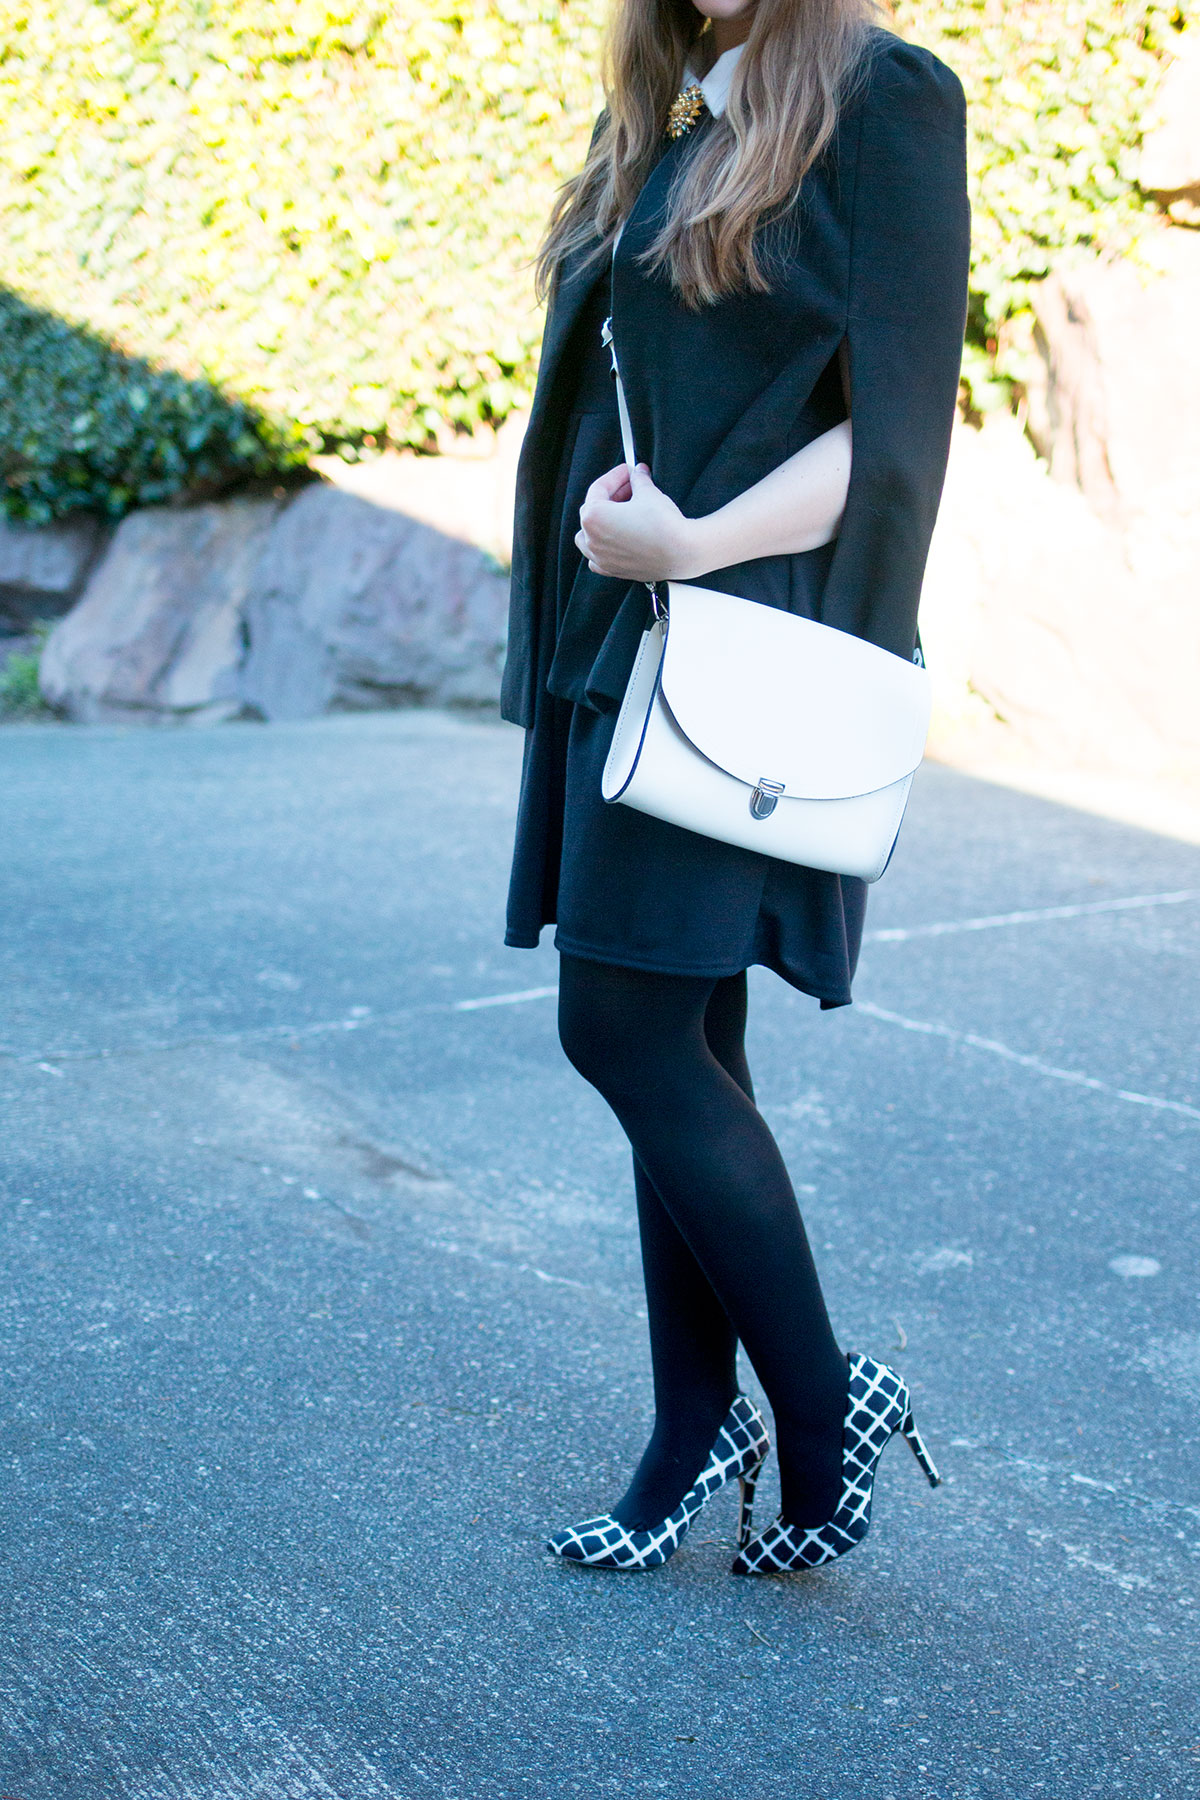 Boohoo Black Cape & Collared Dress Outfit // hellorigby.com seattle fashion blog